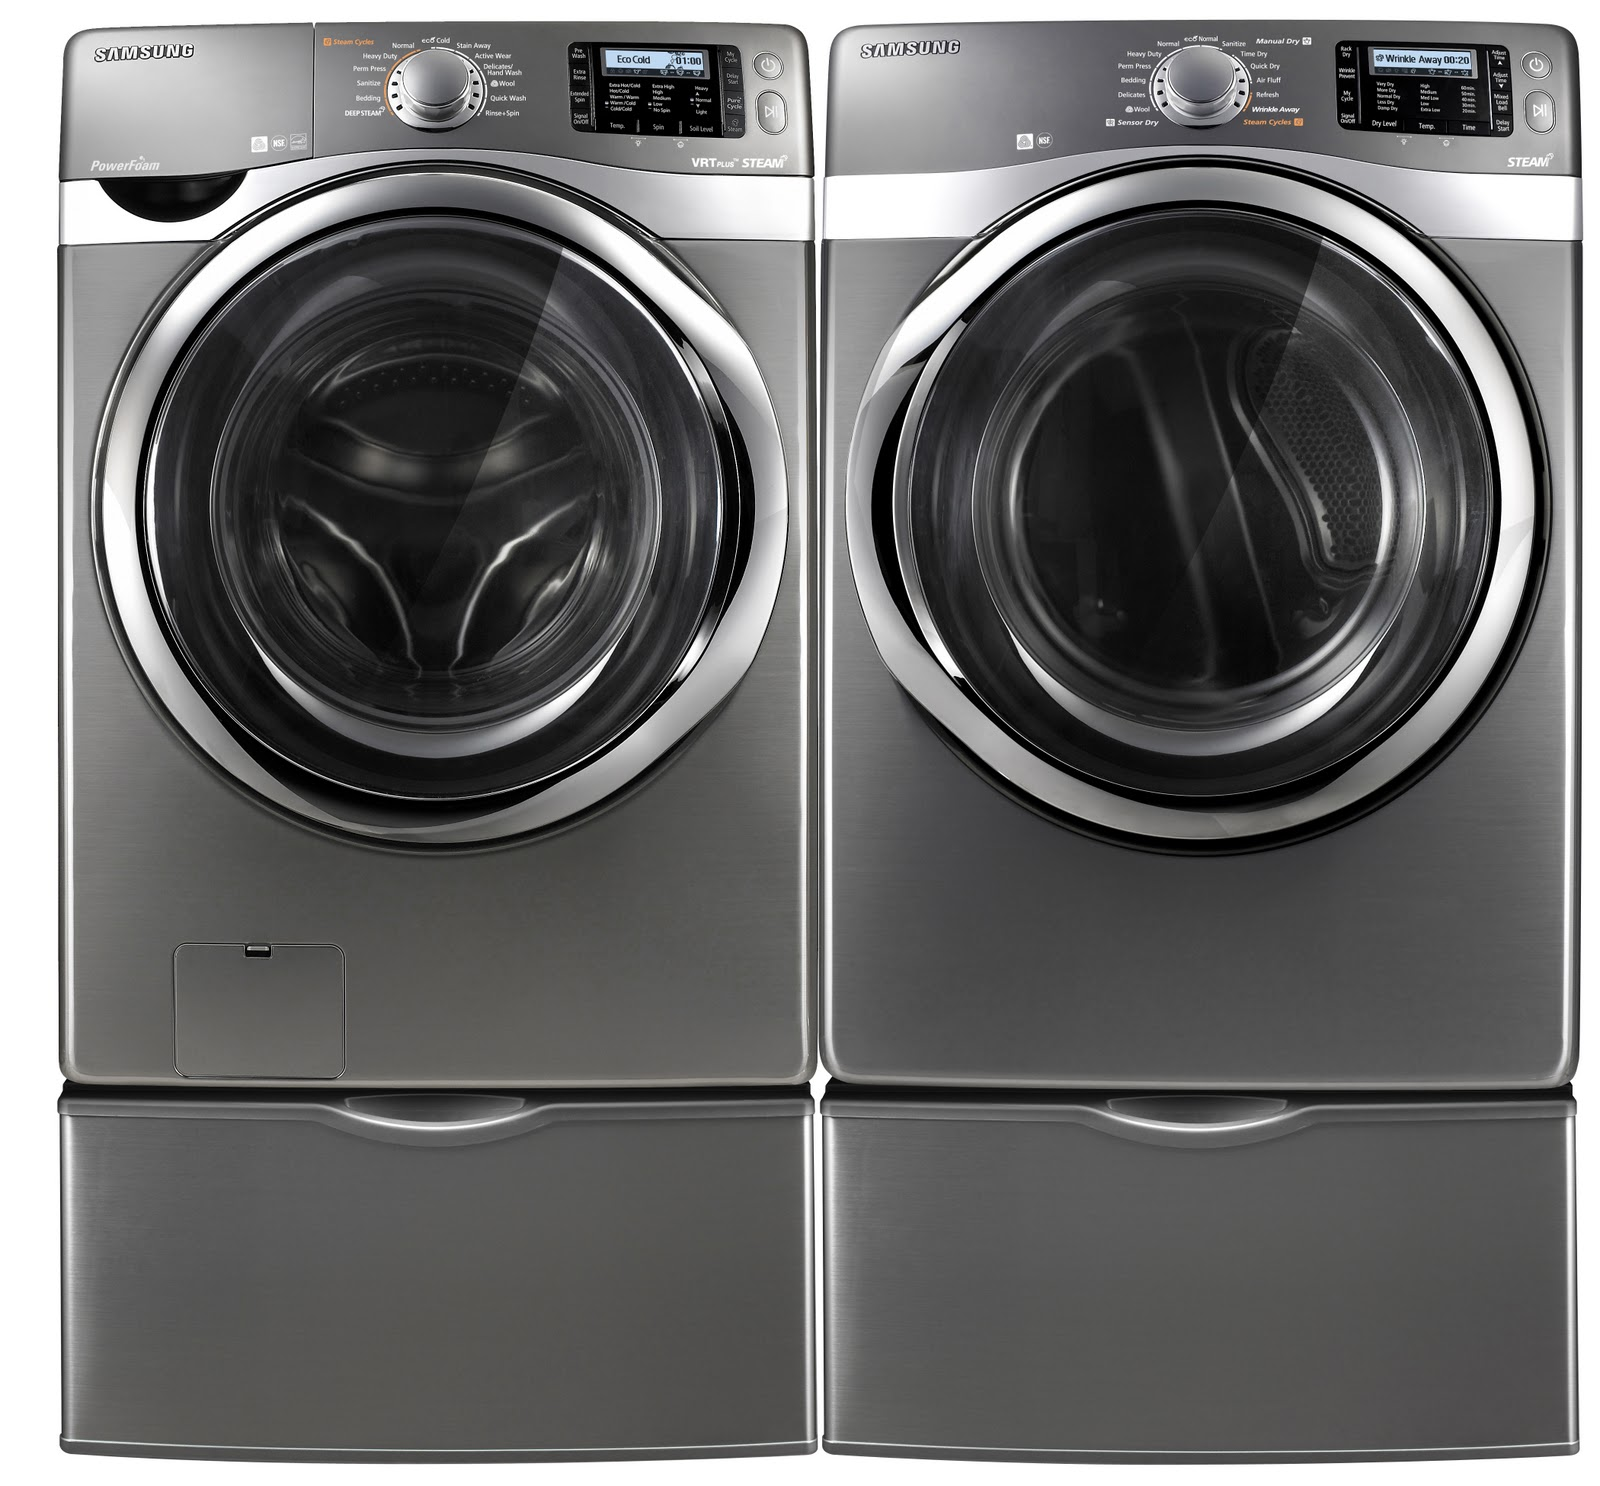 Whirlpool Duet Washer And Dryer Dimensions